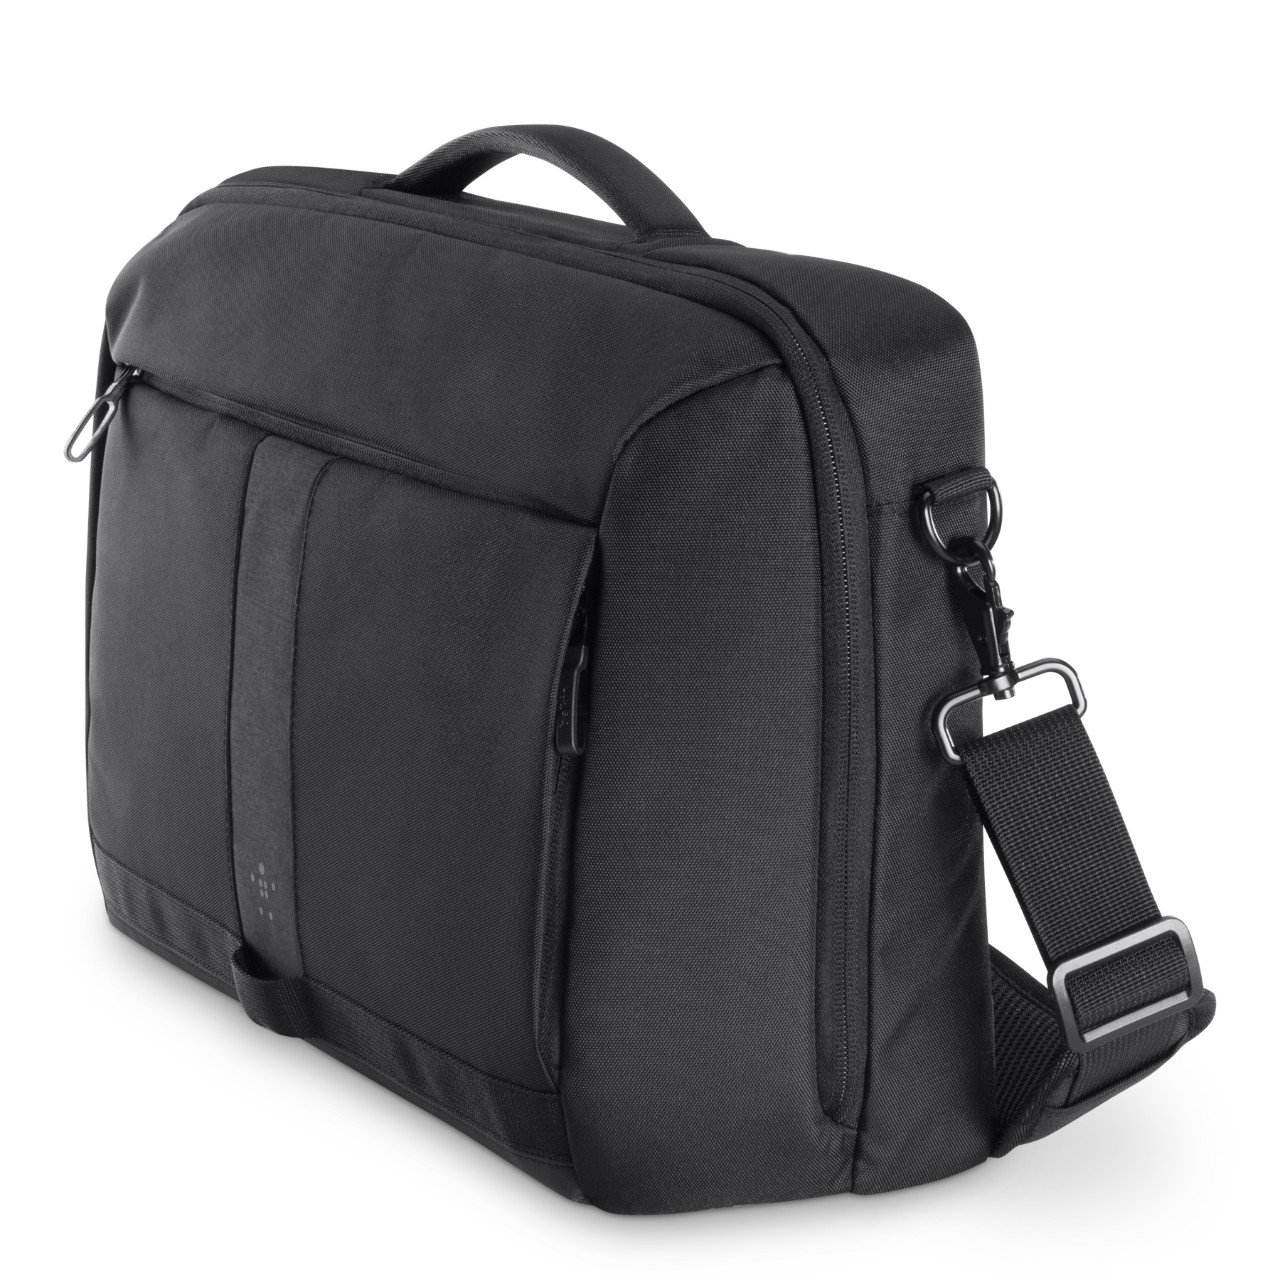 Belkin Active Pro Commuter Messenger Bag for 15.6 inch Laptop – £13.5